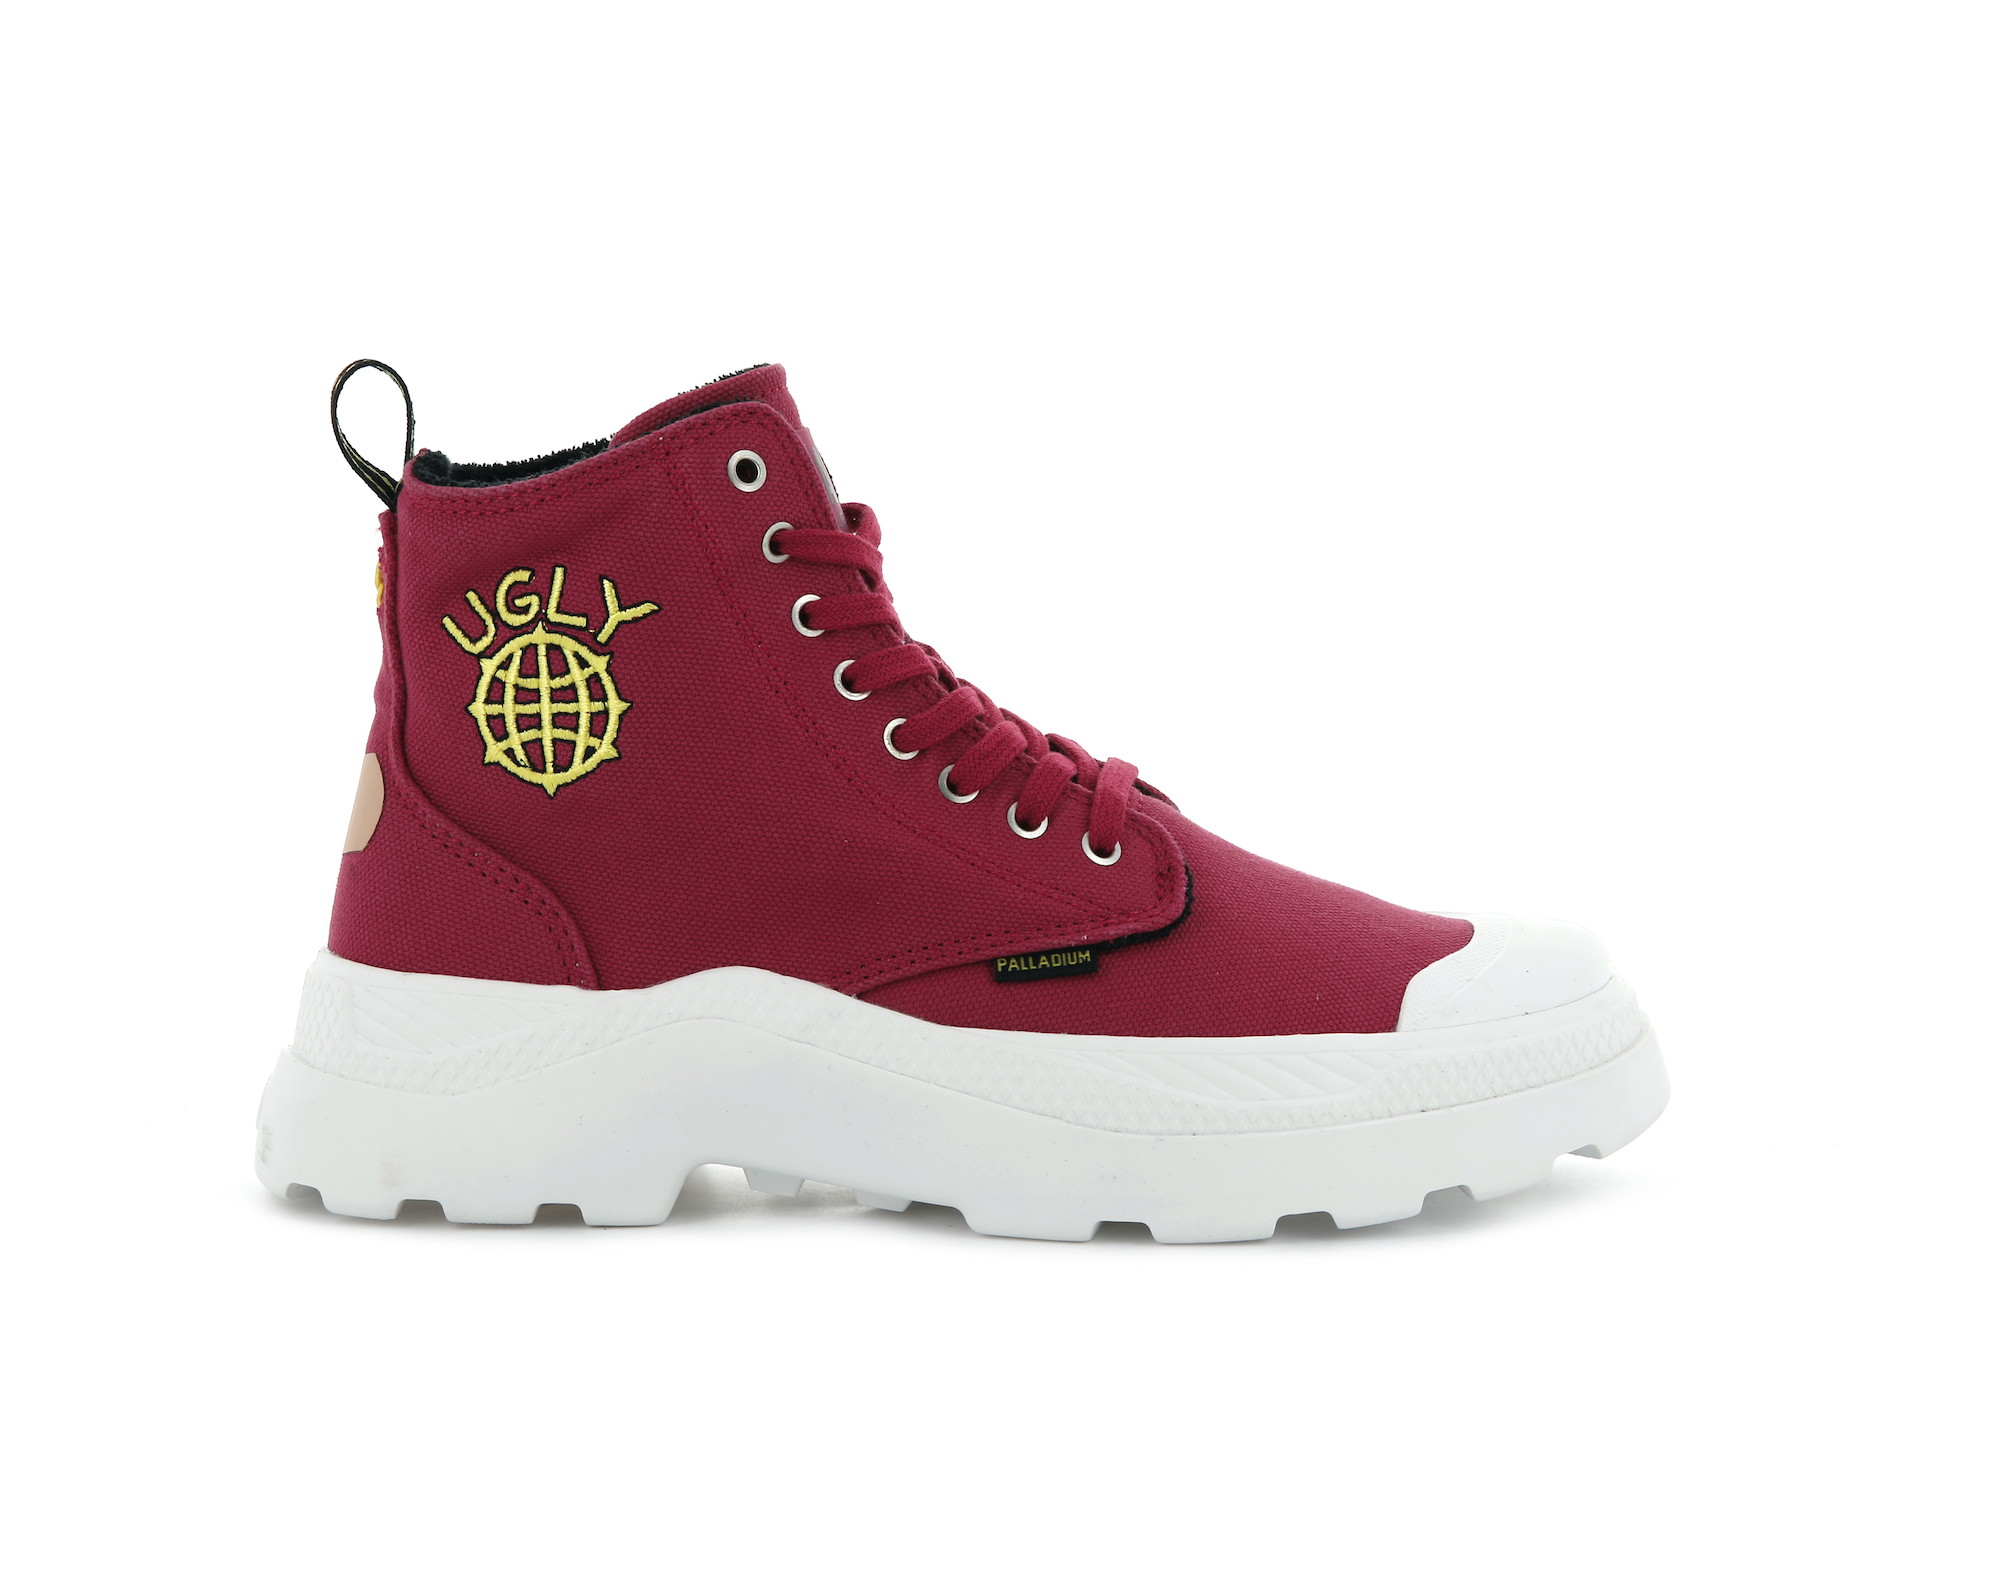 Palladium x Ugly Worldwide red boots